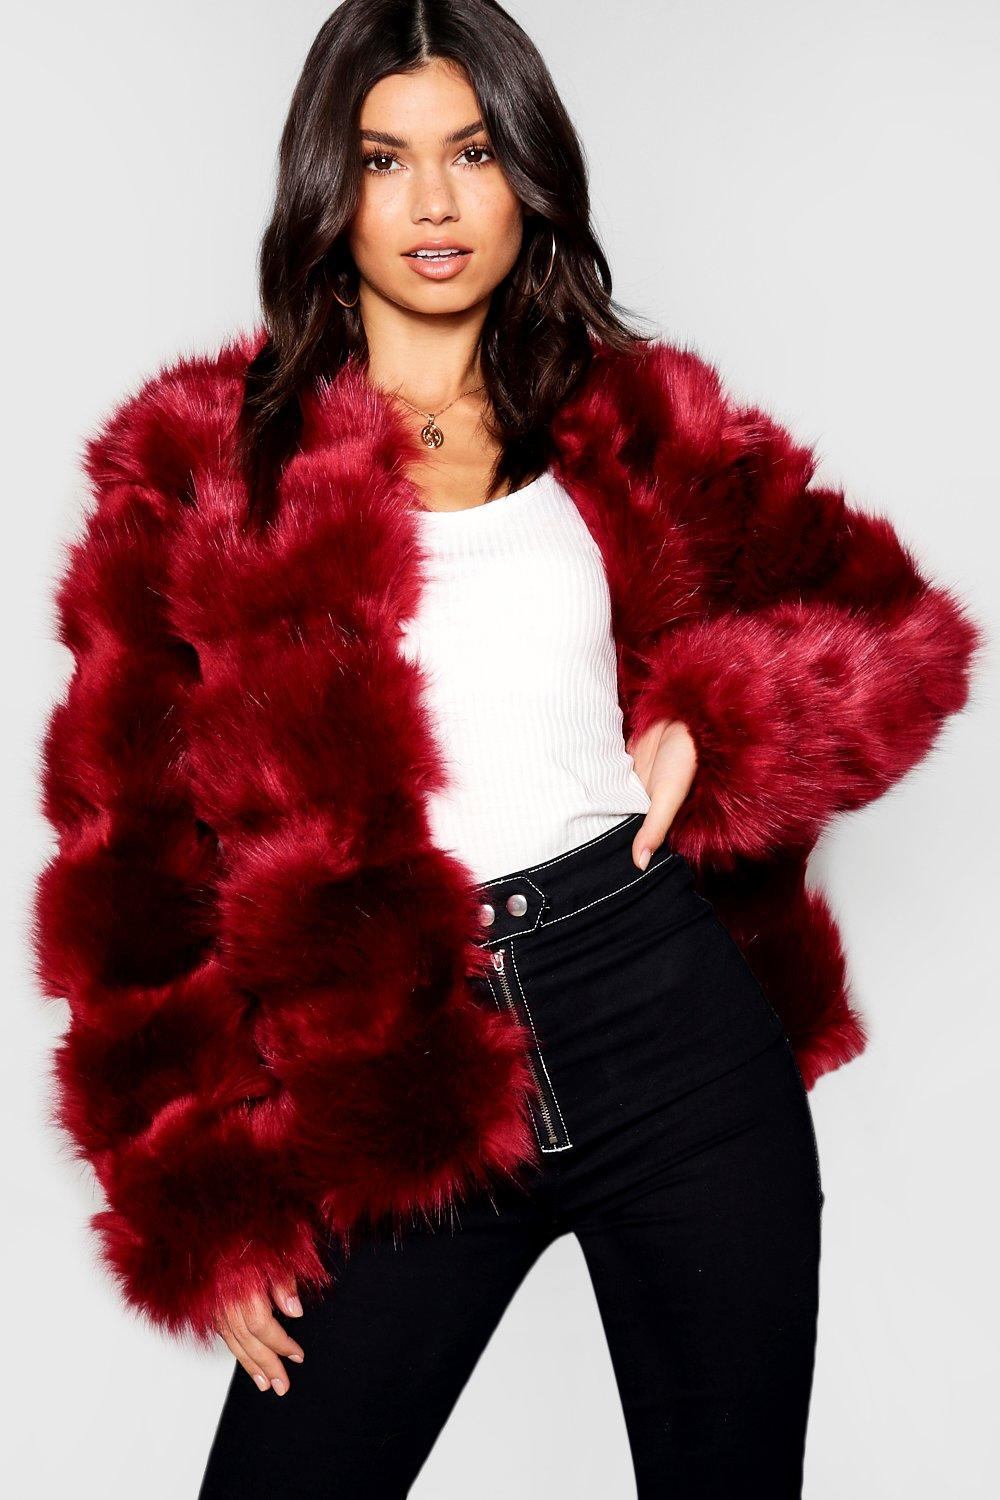 ee27c9d5b2768 Boutique Panelled Faux Fur Coat. Hover to zoom